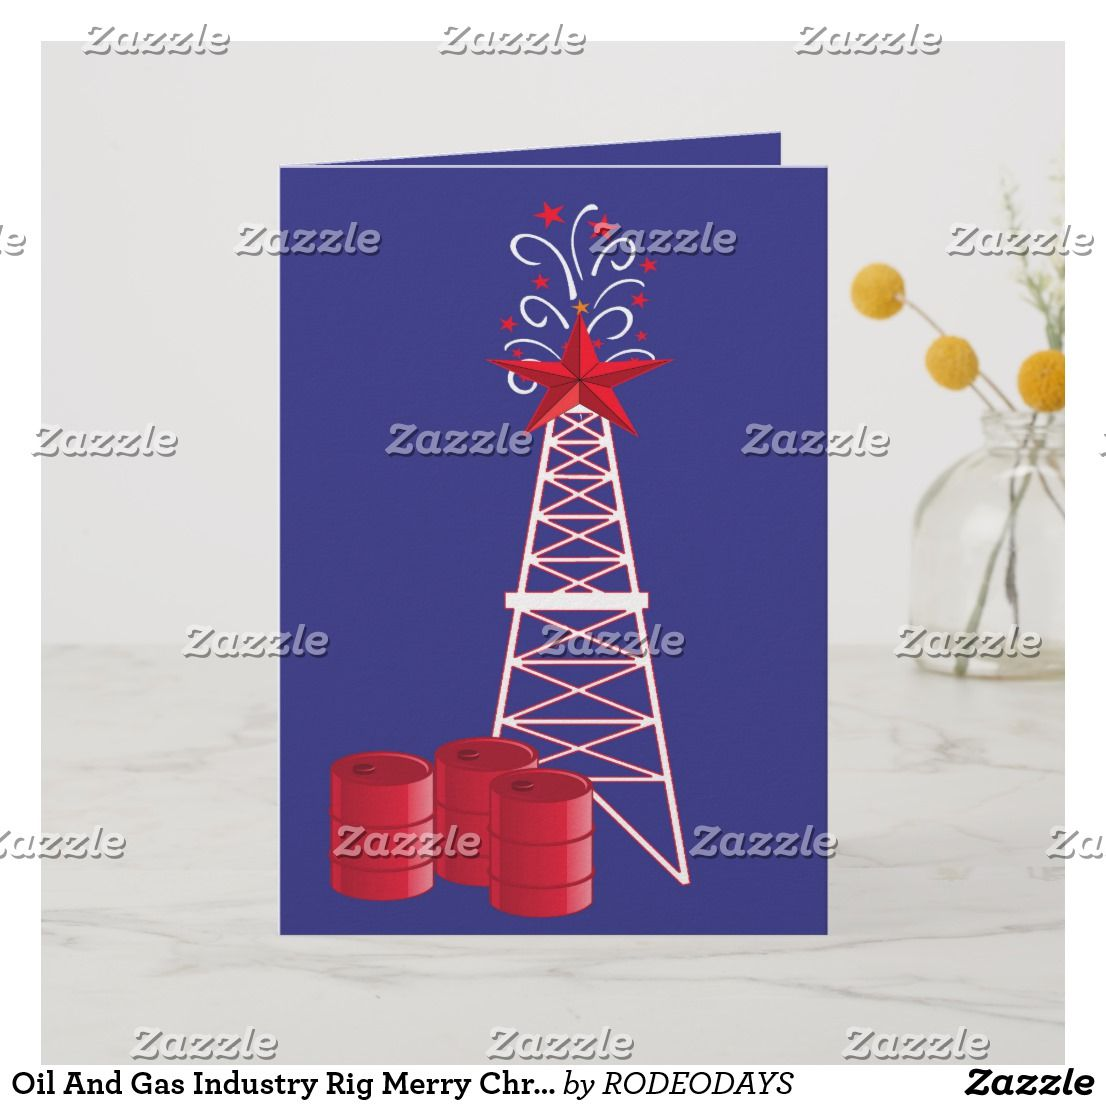 Oil And Gas Industry Rig Merry Christmas Cards Holiday Design Card Christmas Holiday Cards Western Christmas Cards